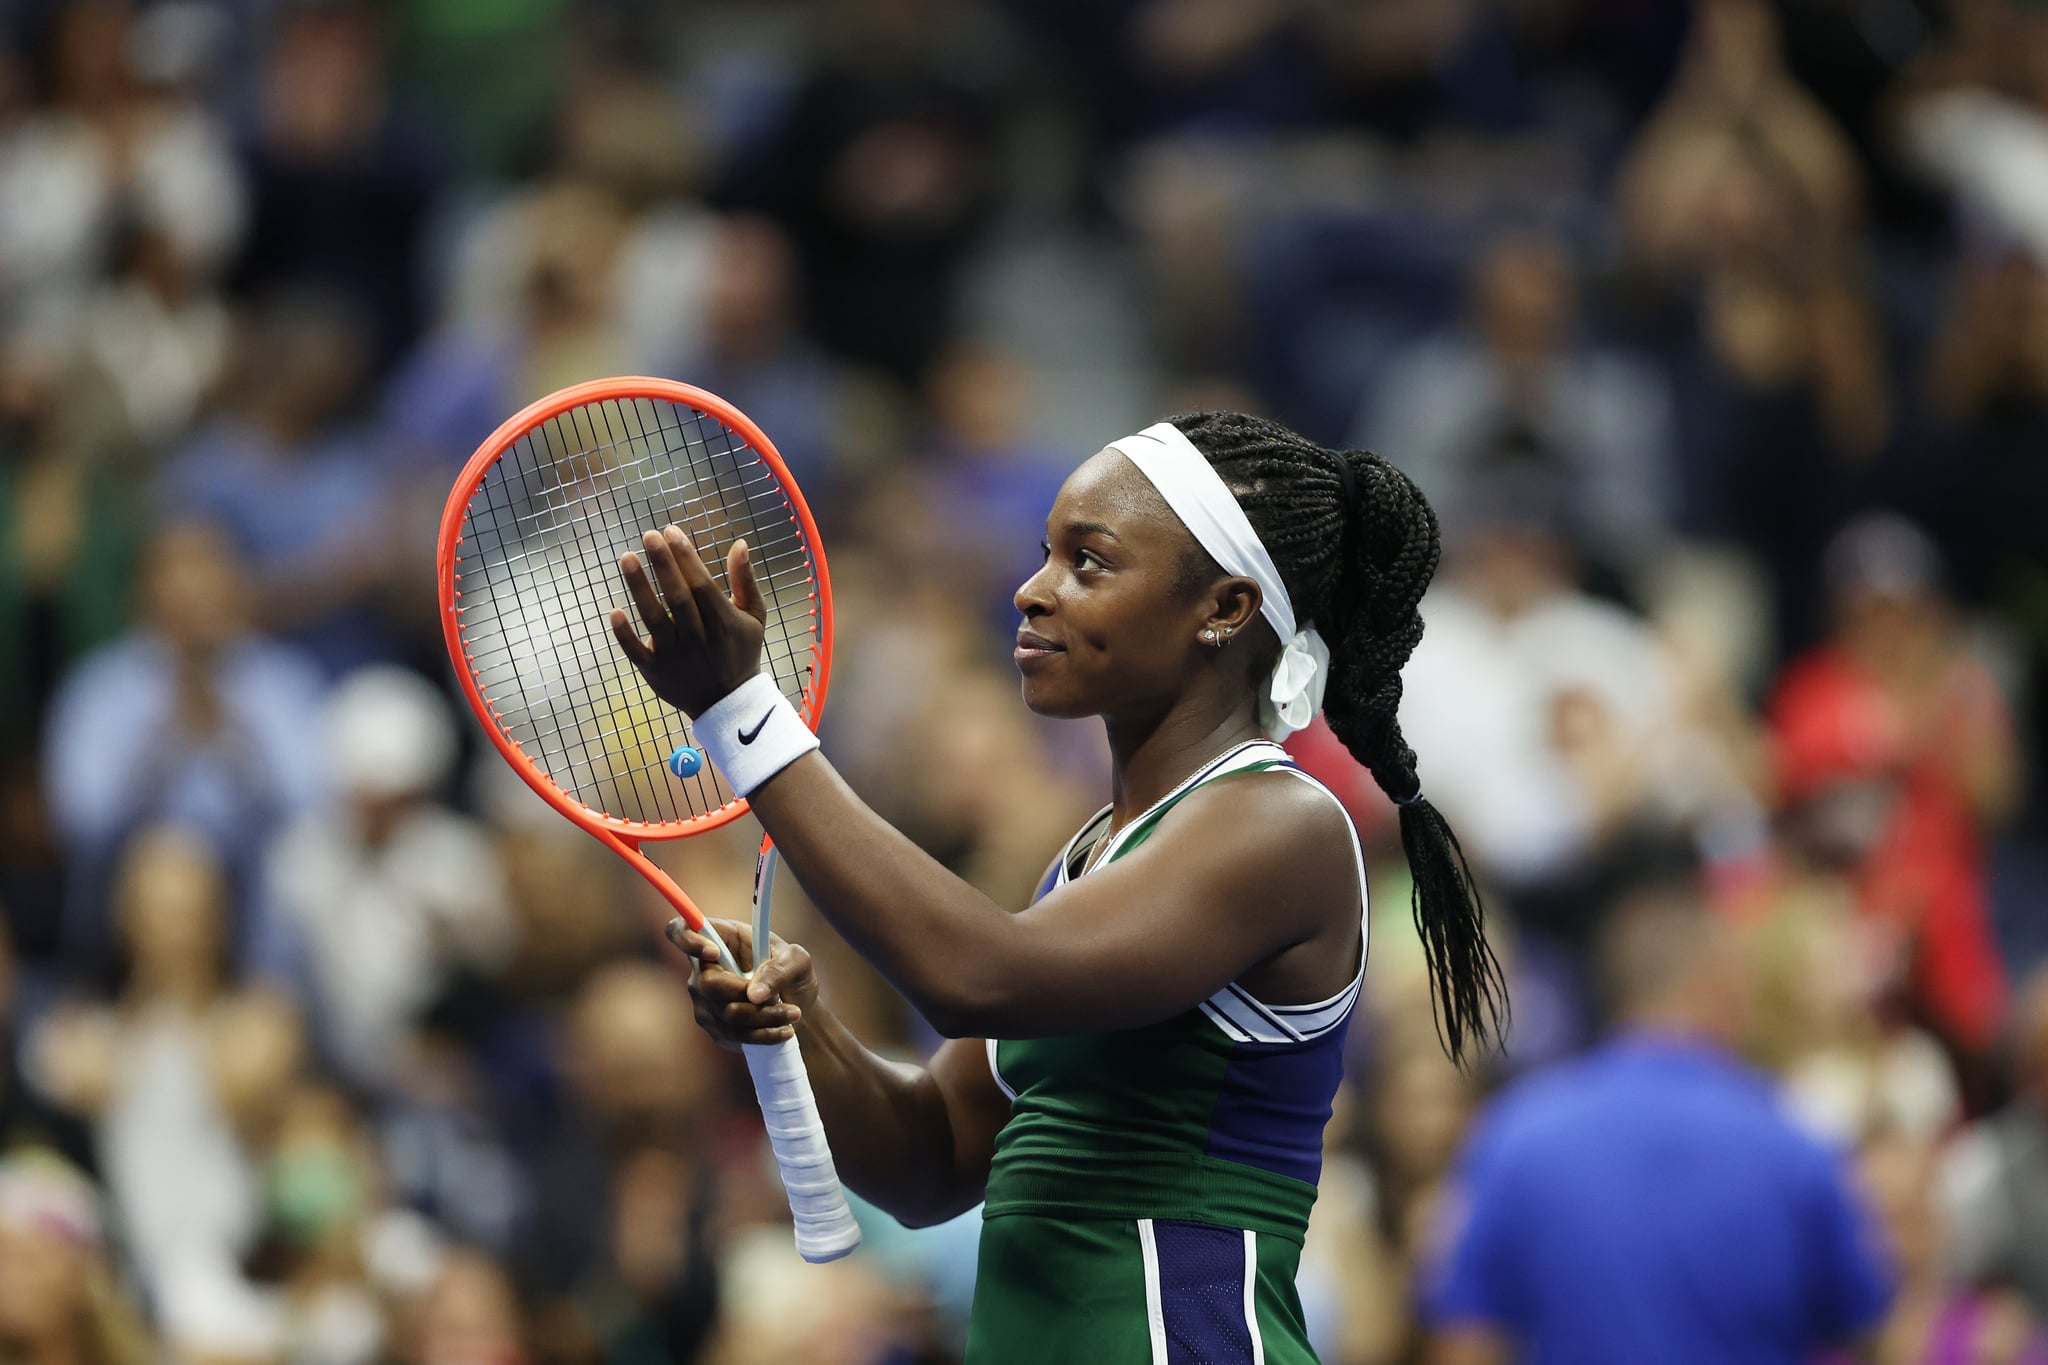 NEW YORK, NEW YORK - SEPTEMBER 01: Sloane Stephens of the United States celebrates after defeating Cori Gauff of the United States during her Women's Singles second round match on Day Three of the 2021 US Open at the Billie Jean King National Tennis Centre on September 01, 2021 in the Flushing neighbourhood of the Queens borough of New York City. (Photo by Matthew Stockman/Getty Images)